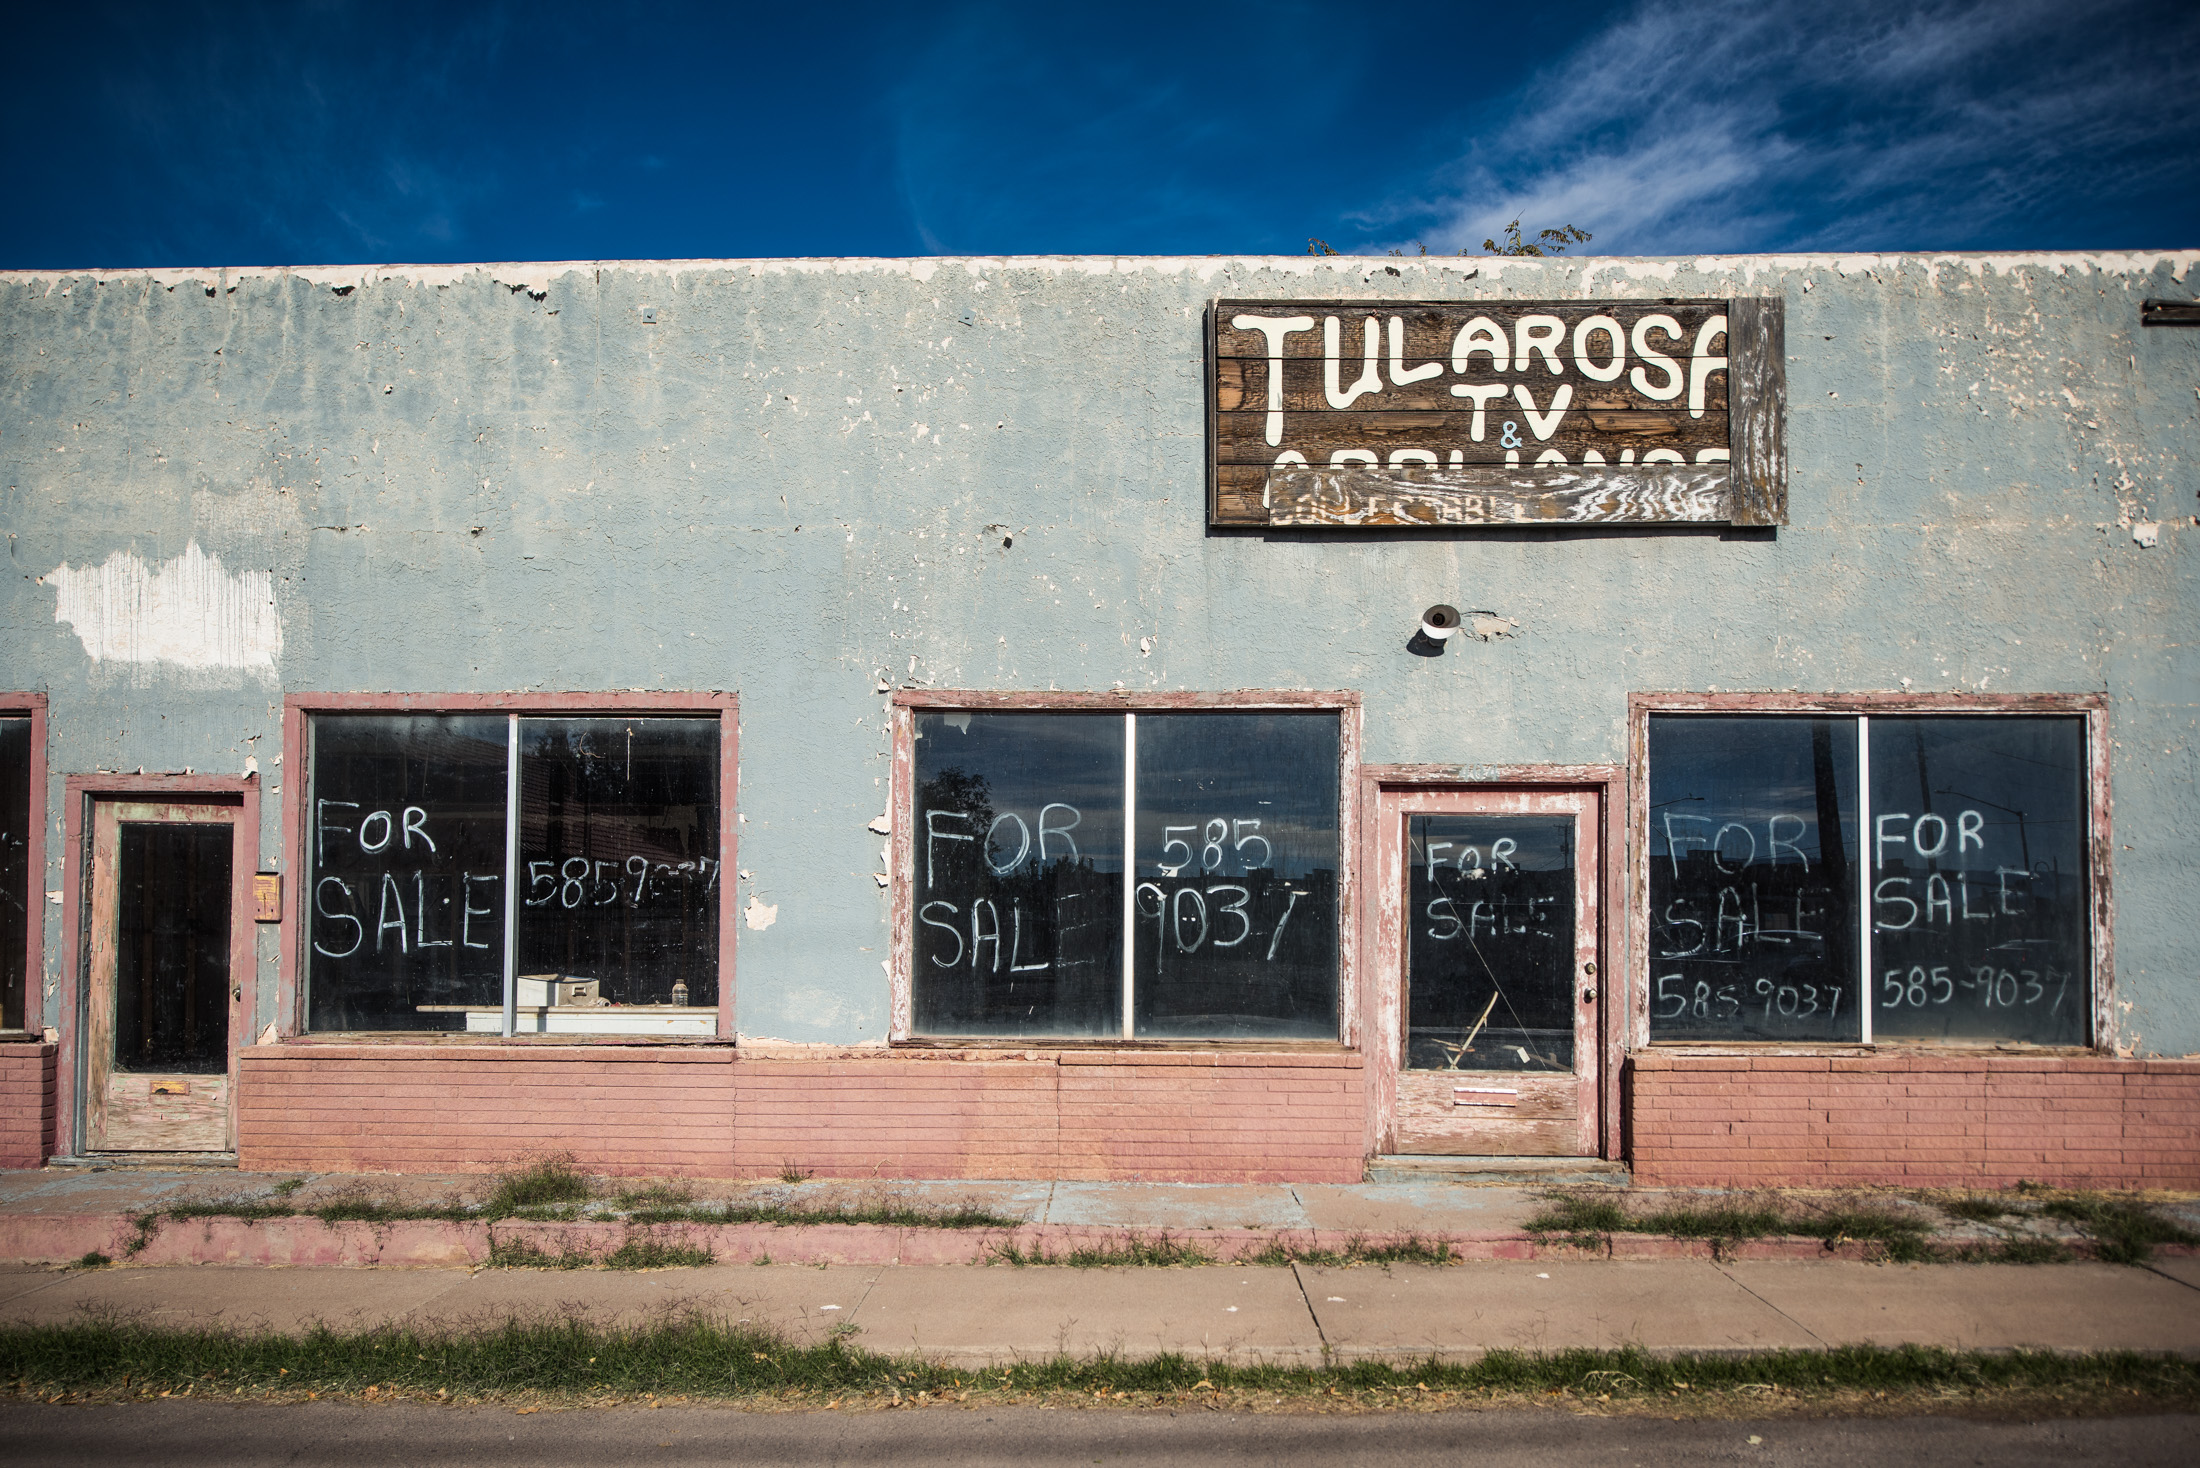 Tularosa was the hometown of four generations of the Telles family.(Telles is the surname of my paternal grandmother.) Most eventually departed to California for economic reasons.